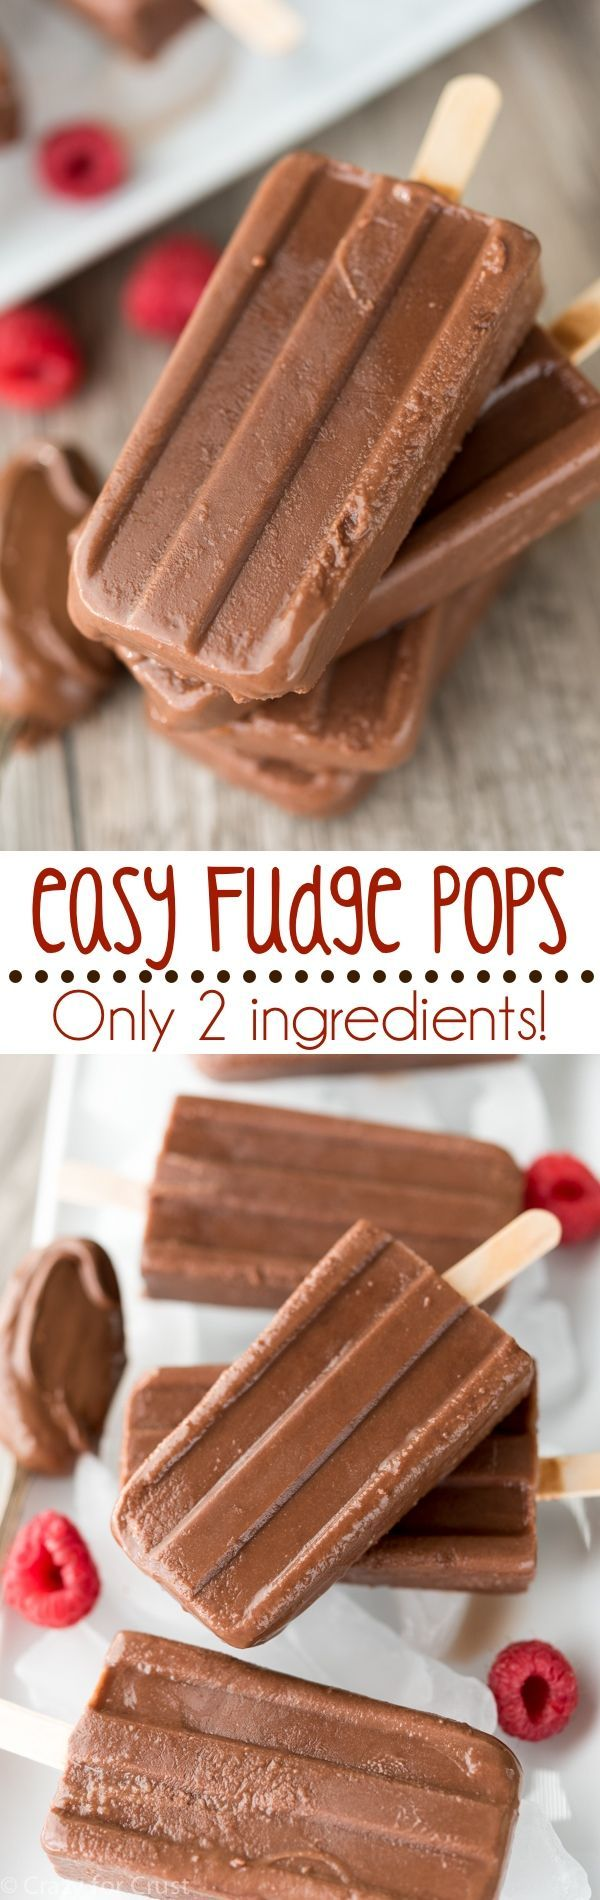 Easy Fudge Pops with only 2 ingredients - like a fudgesicle only BETTER!